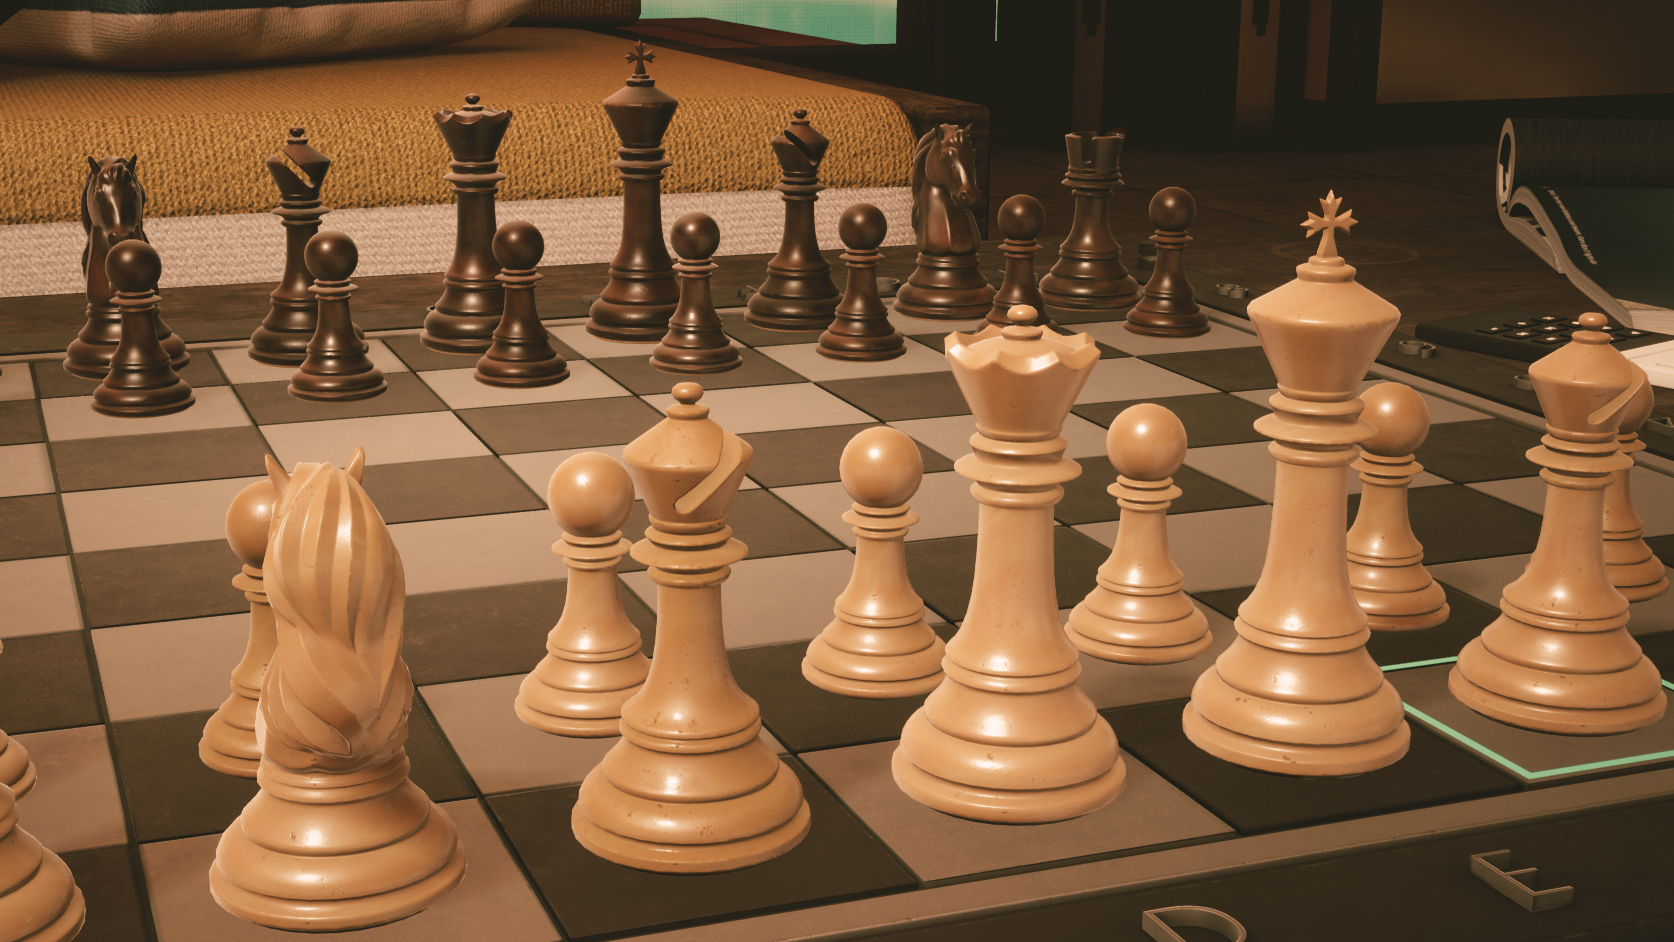 Best chess games | PC Gamer